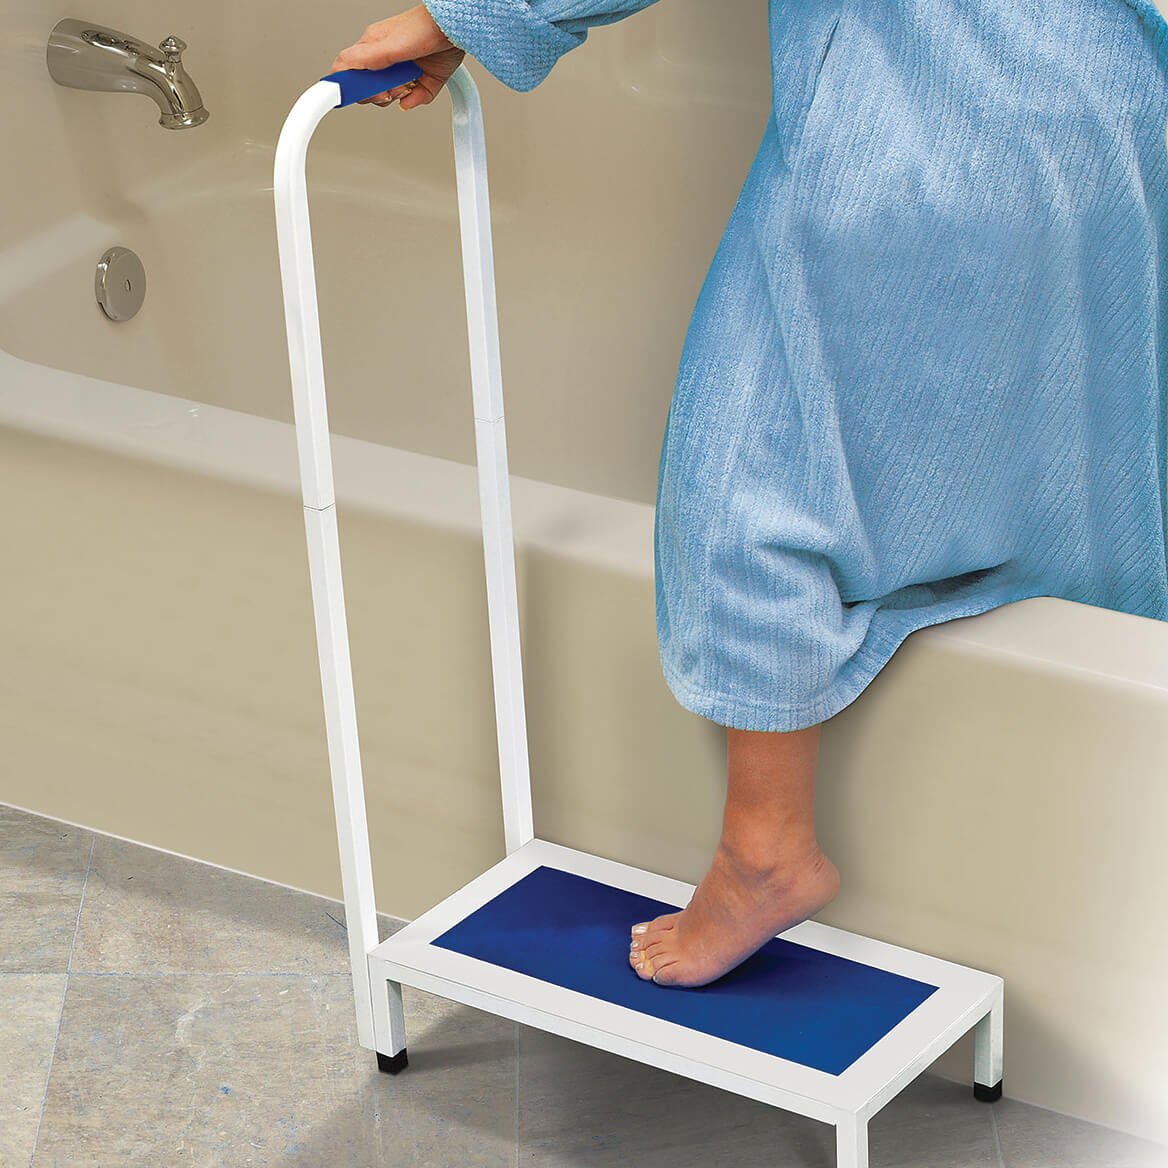 Bath safety step bath step stool shower step stool for Bathroom safety shower shoes